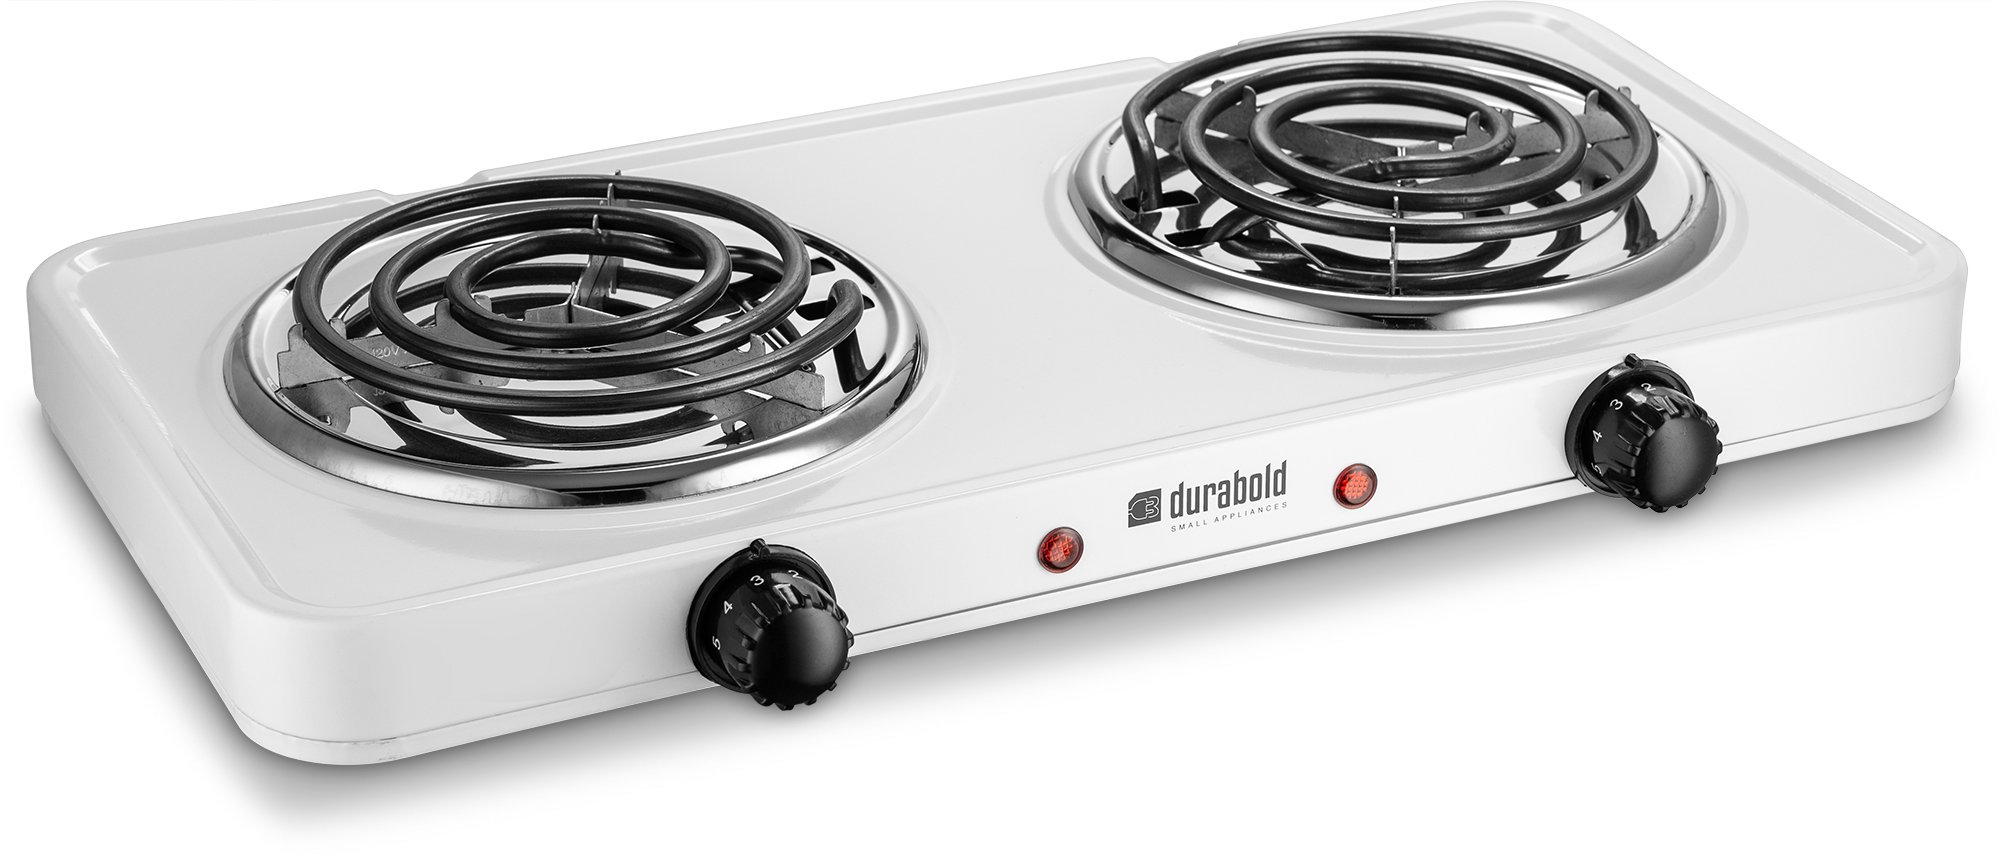 Kitchen Countertop Cast-Iron Double Burner - Stainless Steel Body – Ideal for RV, Small Apartments, Camping, Cookery Demonstrations, or as an Extra Burner – by Durabold (White)